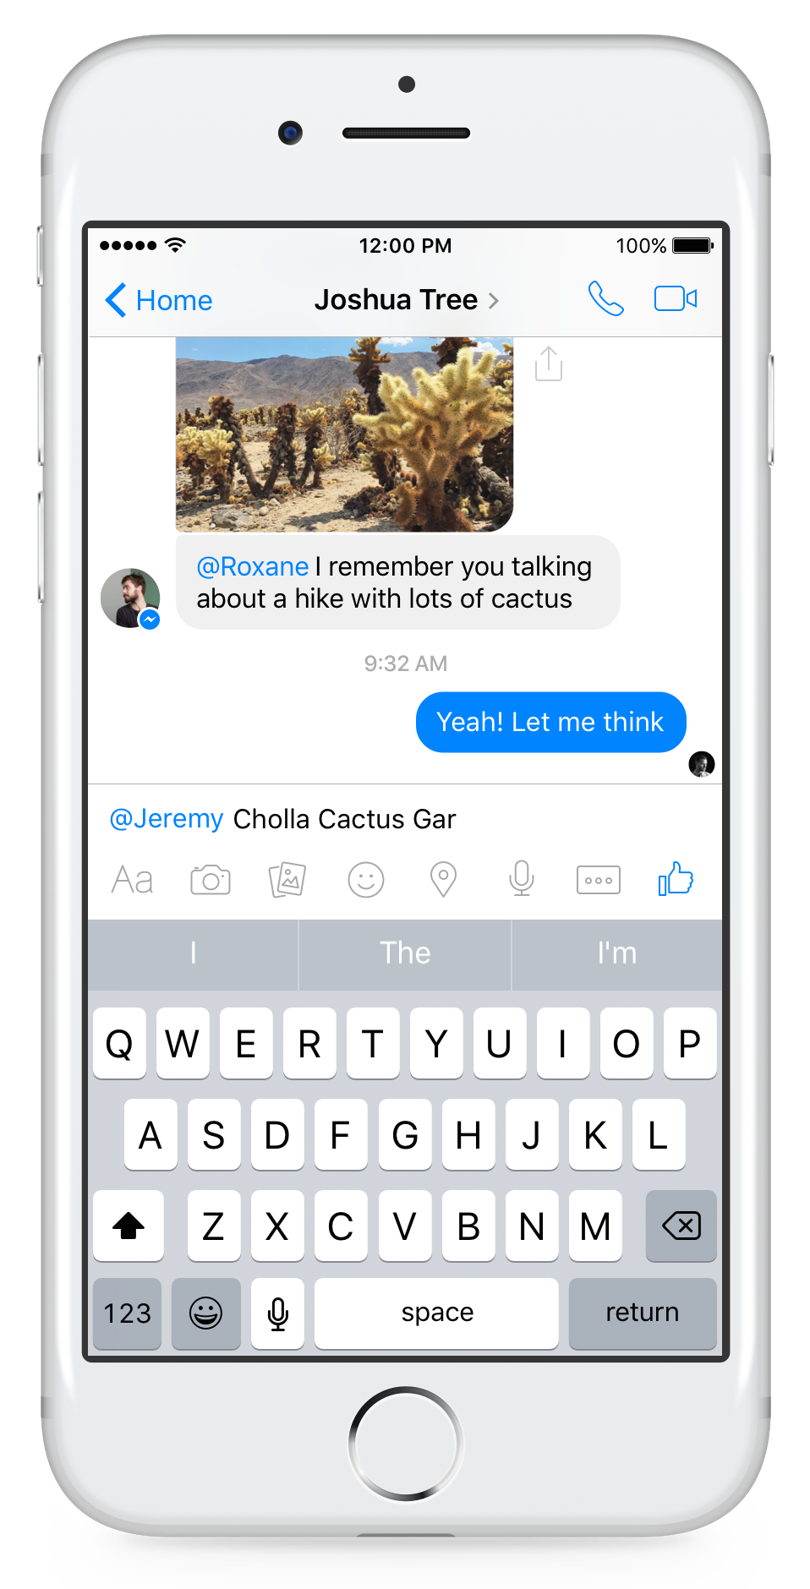 Facebook messenger reactions and mentions goes live wired uk buycottarizona Images